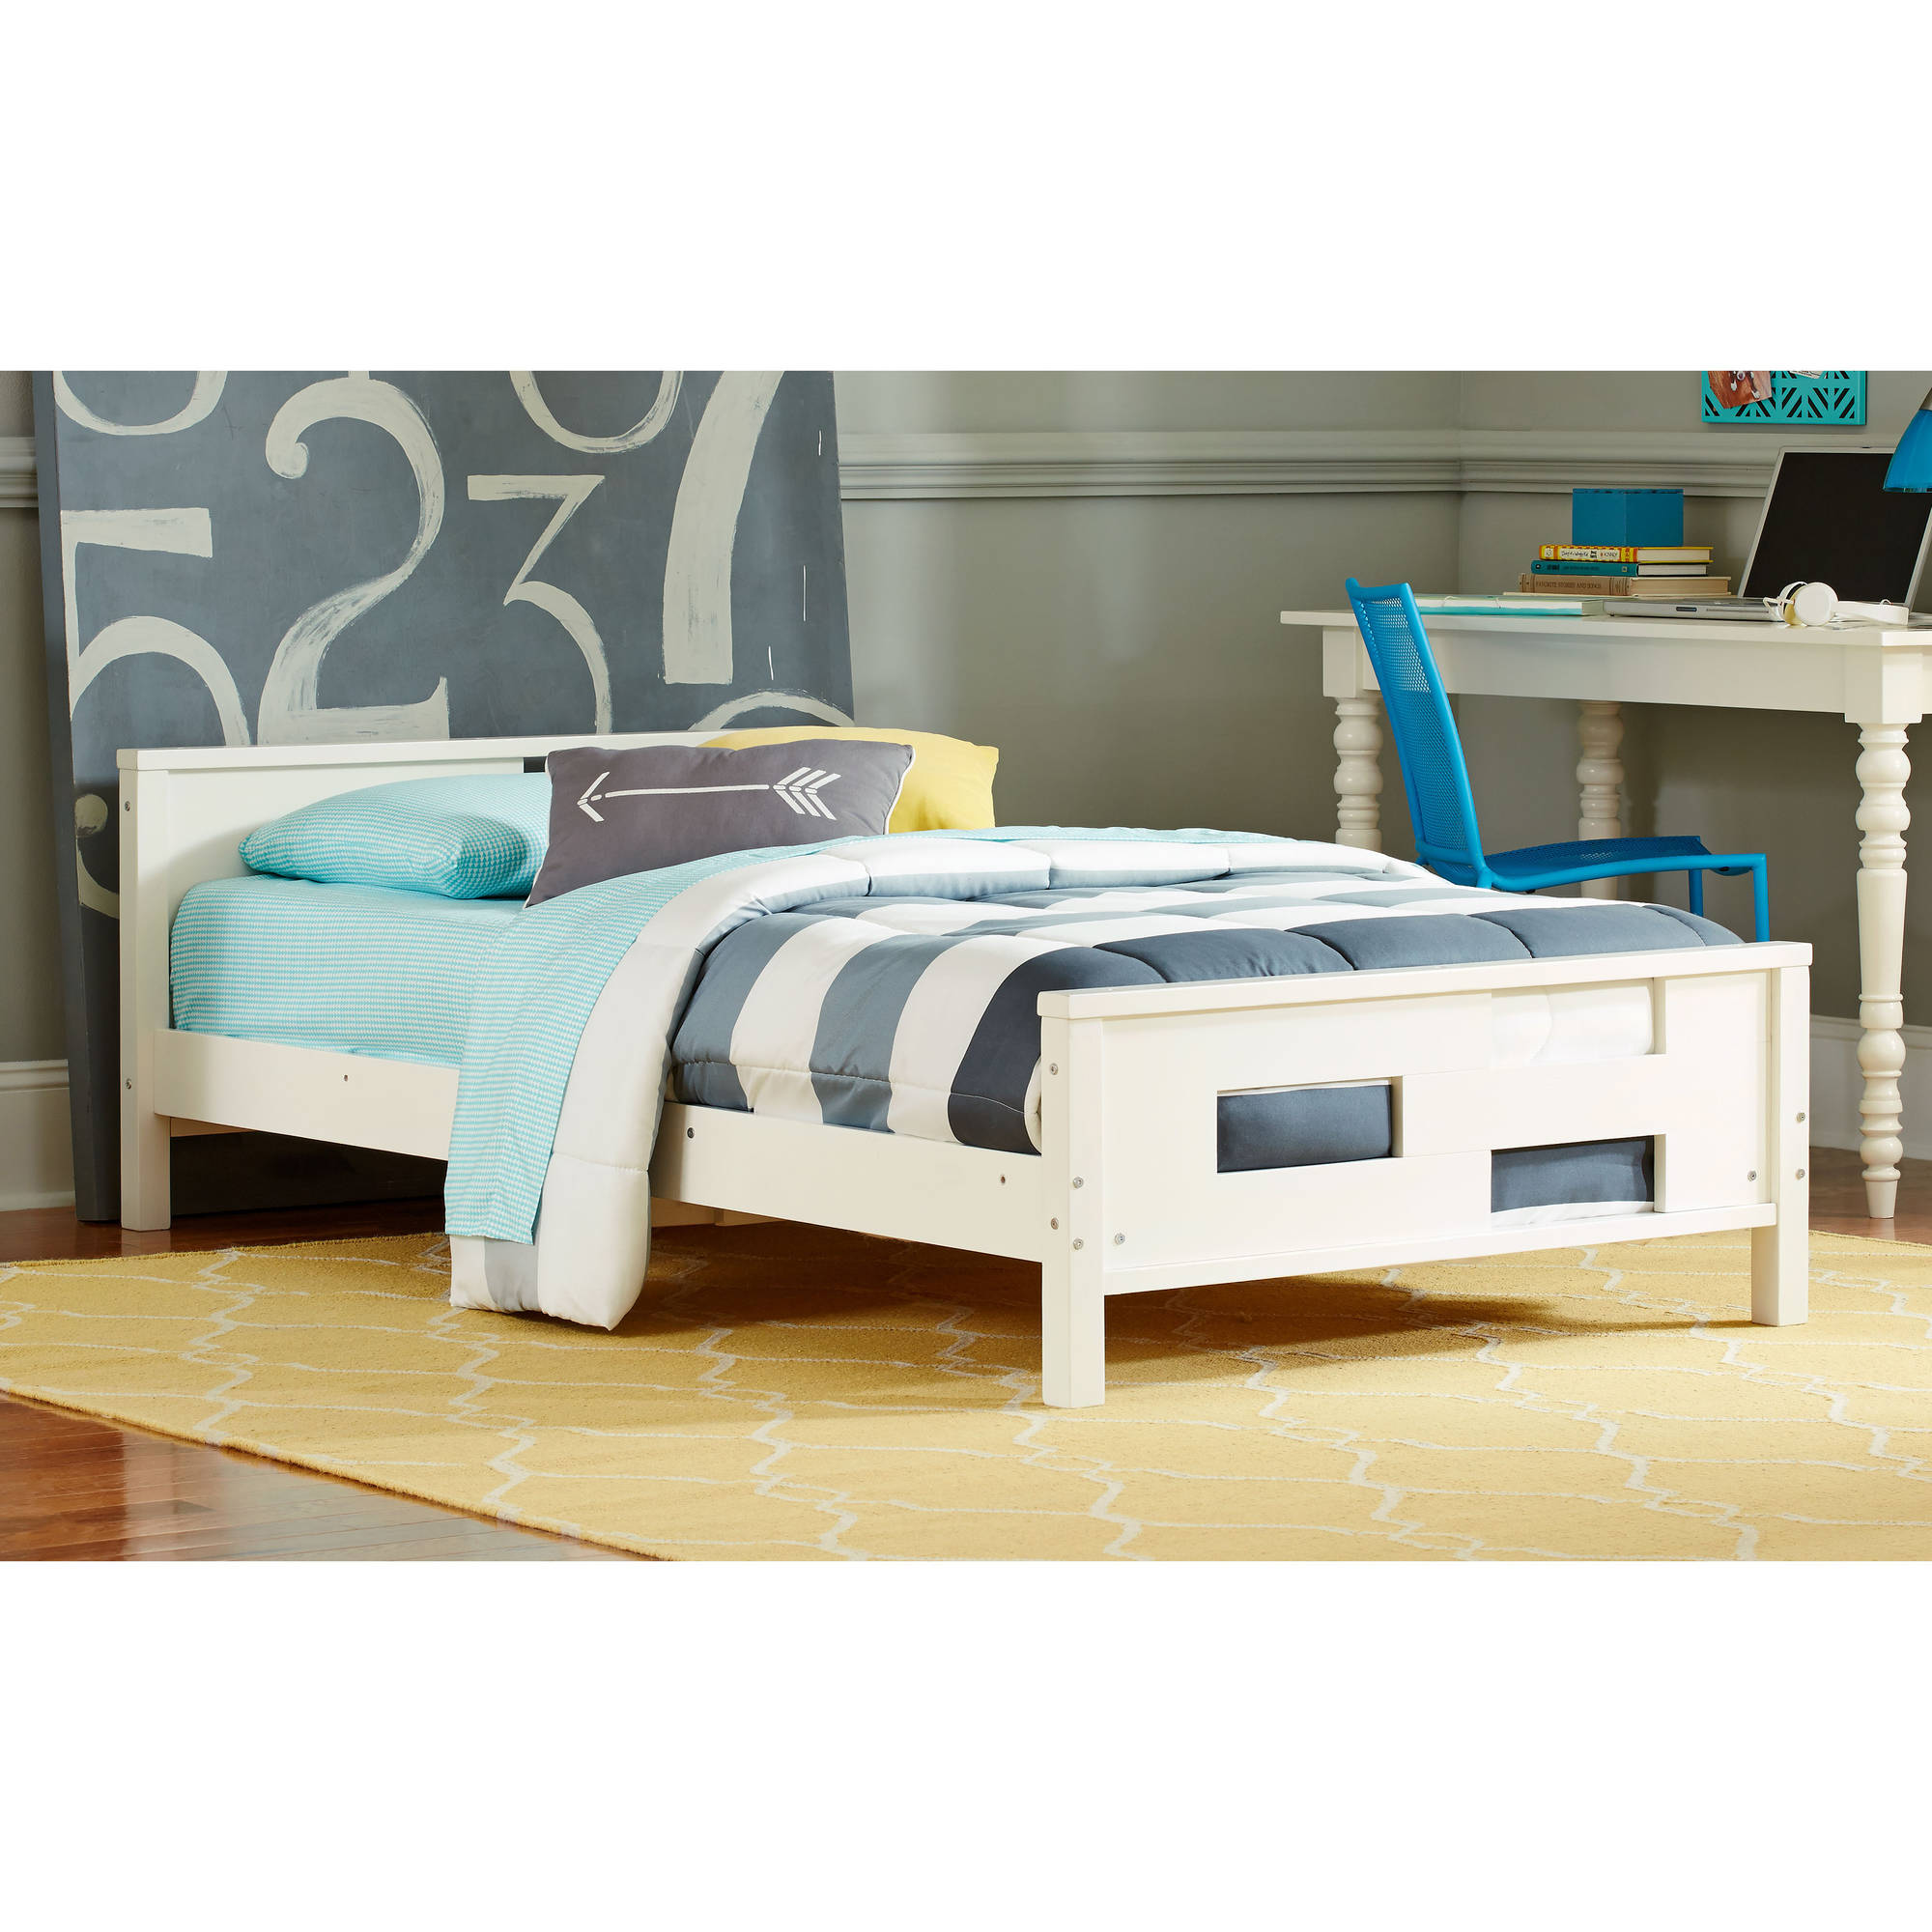 baby relax phases and stages toddler to twin convertible bed choose your color walmartcom